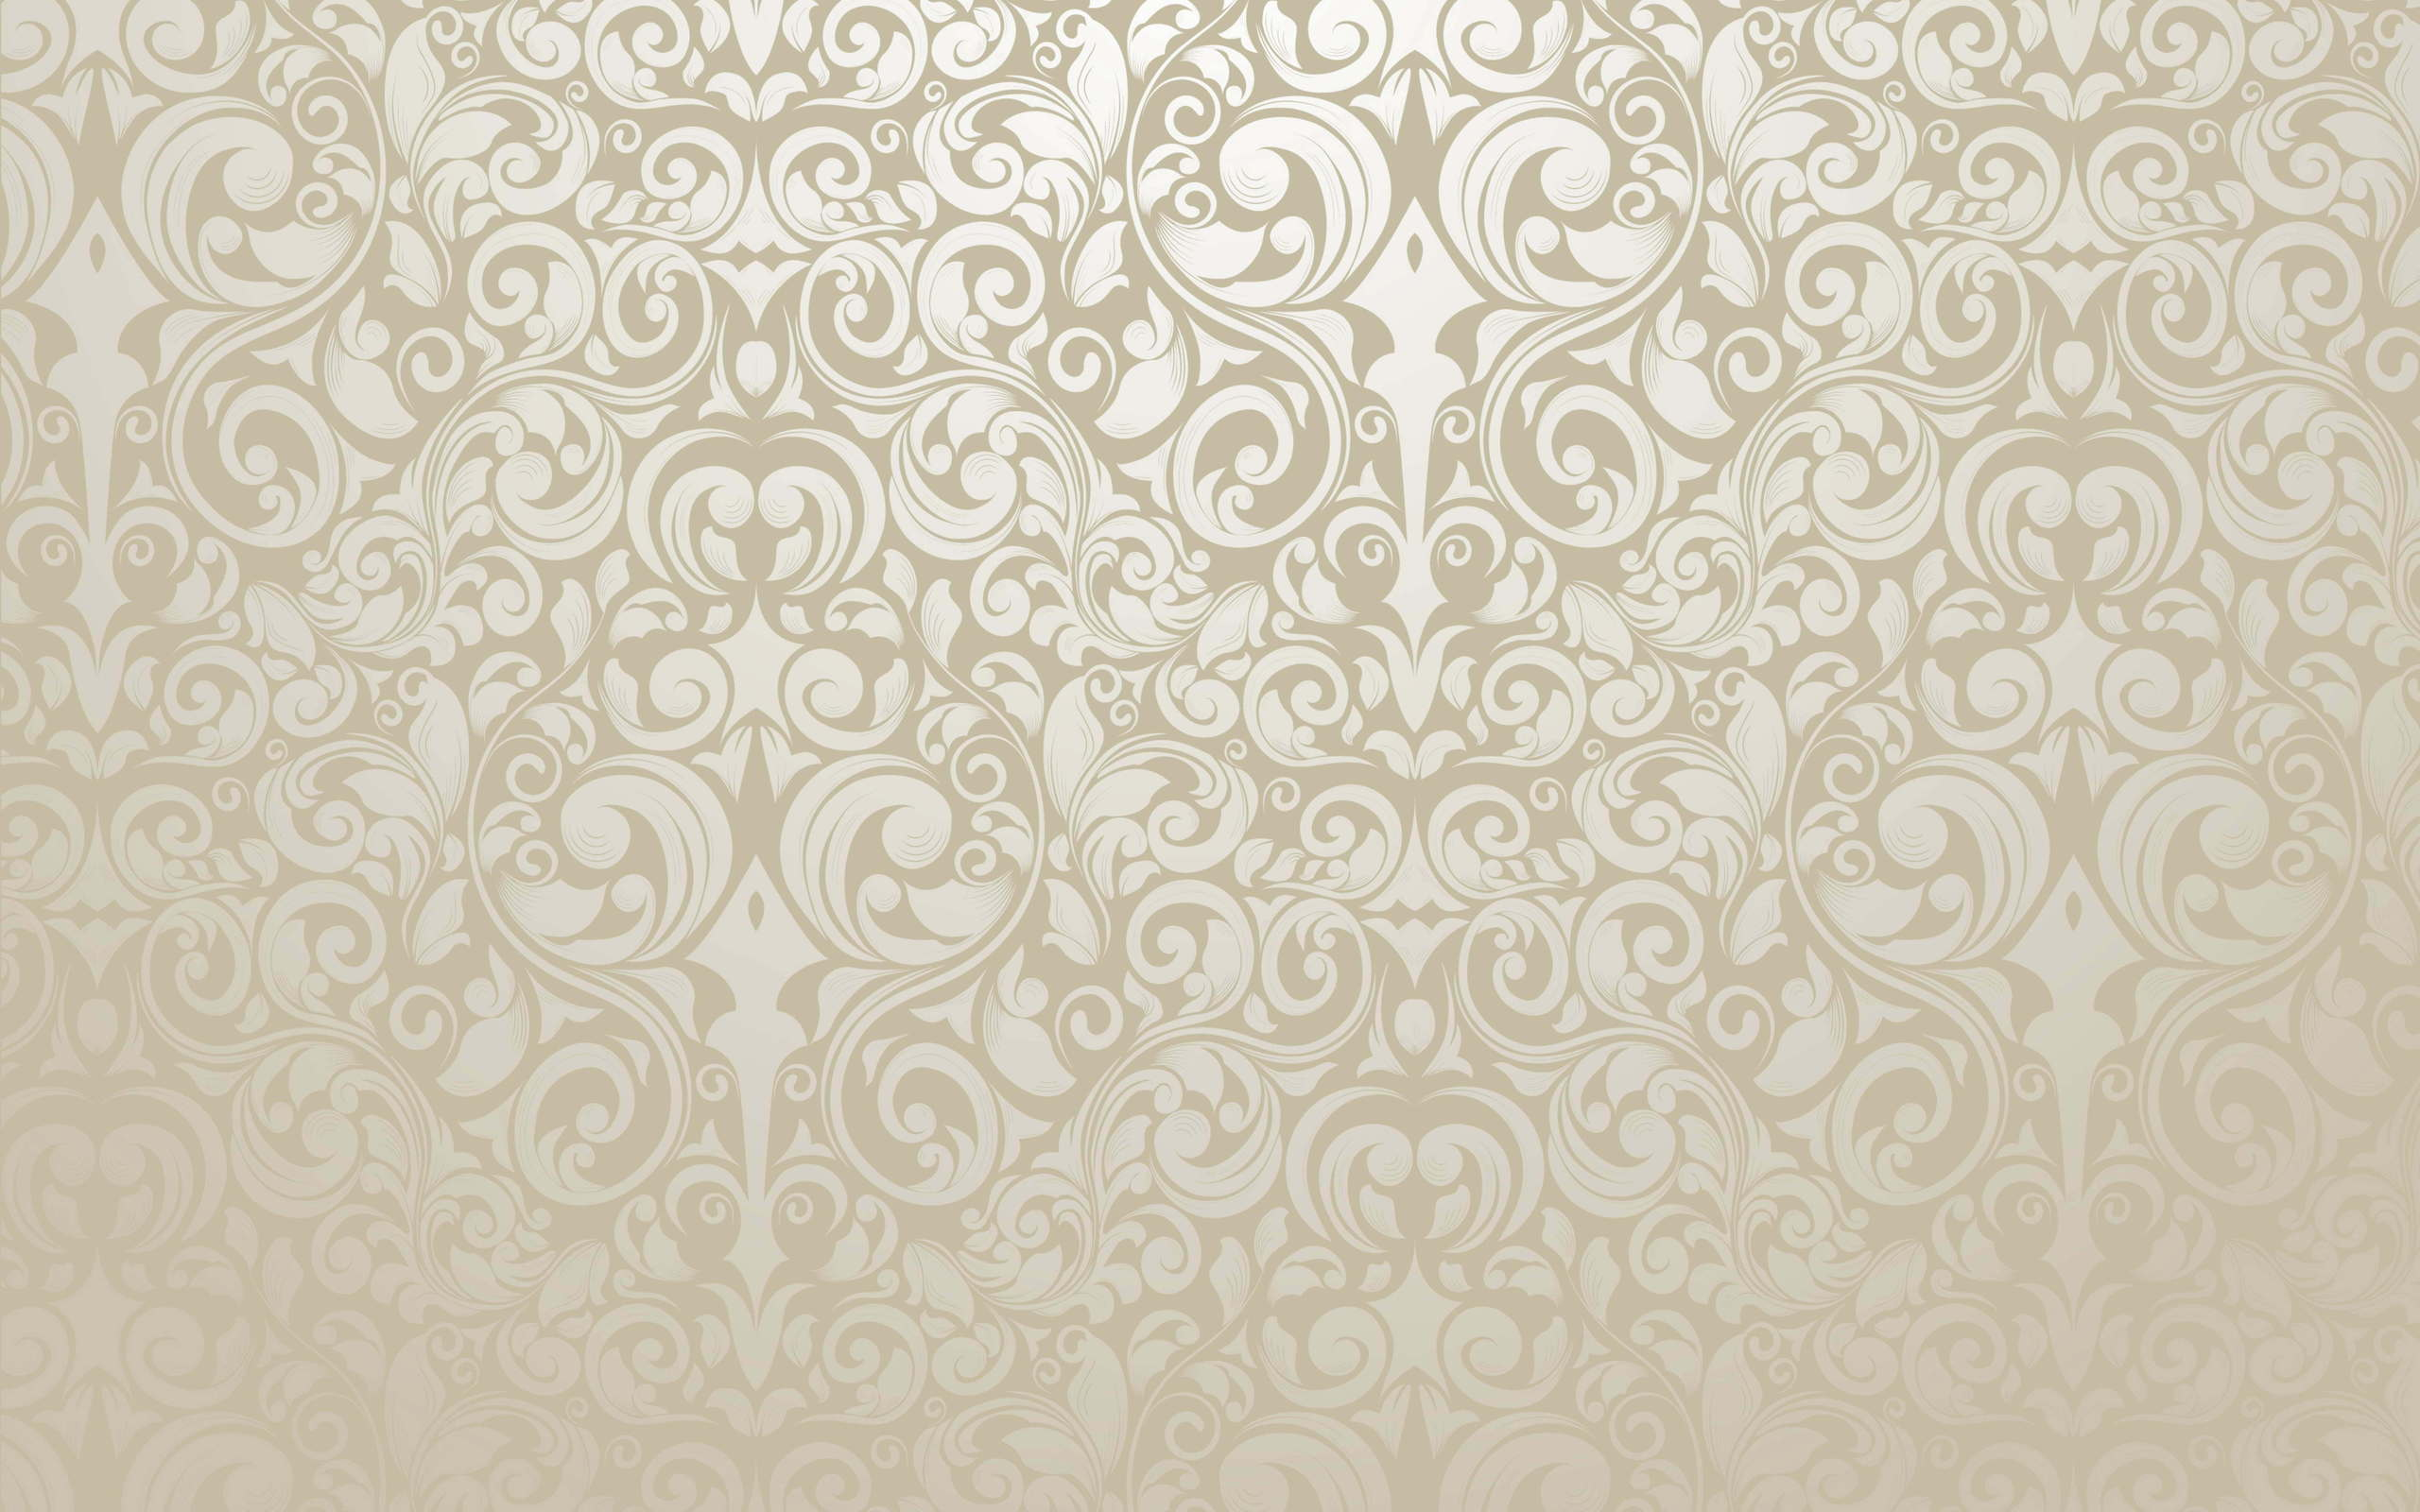 Vintage Wallpapers Top Free Vintage Backgrounds Wallpaperaccess Images, Photos, Reviews